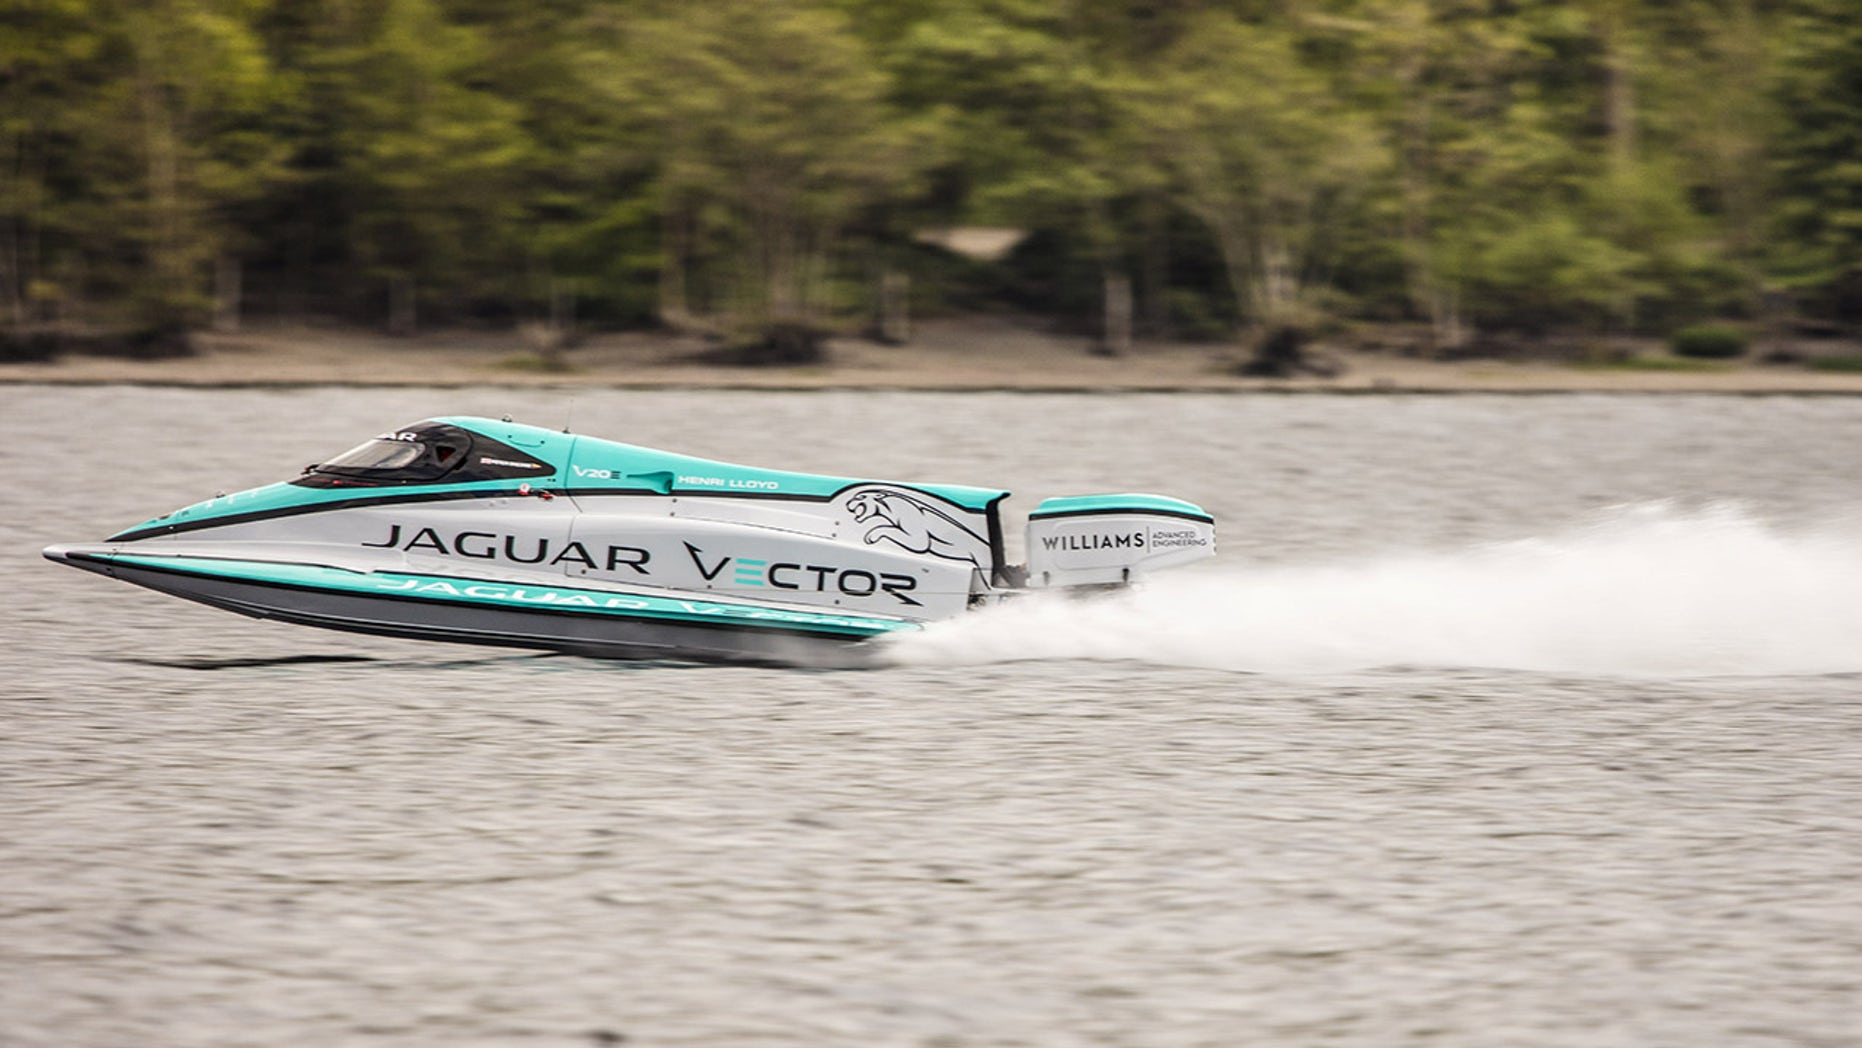 A Jaguar Vector V20E speedboat has broken the previous record to become the world's fastest electric speedboat after it 88mph on Coniston Water in the Lake District. See SWNS story SWELECTRIC; Water and electricity mixed perfectly after a state-of-the-art battery-powered boat set a world speed record on a British lake.  The unique Jaguar Vector V20E is now the world's fastest electric speedboat after it 88mph on Coniston Water in the Lake District.  Over two legs, Jaguar Vector co-founder and technical director Peter Dredge, averaged 88.61mph in the V20E. This smashed the previous record for an electric boat of 76.8mph, set in 2008.